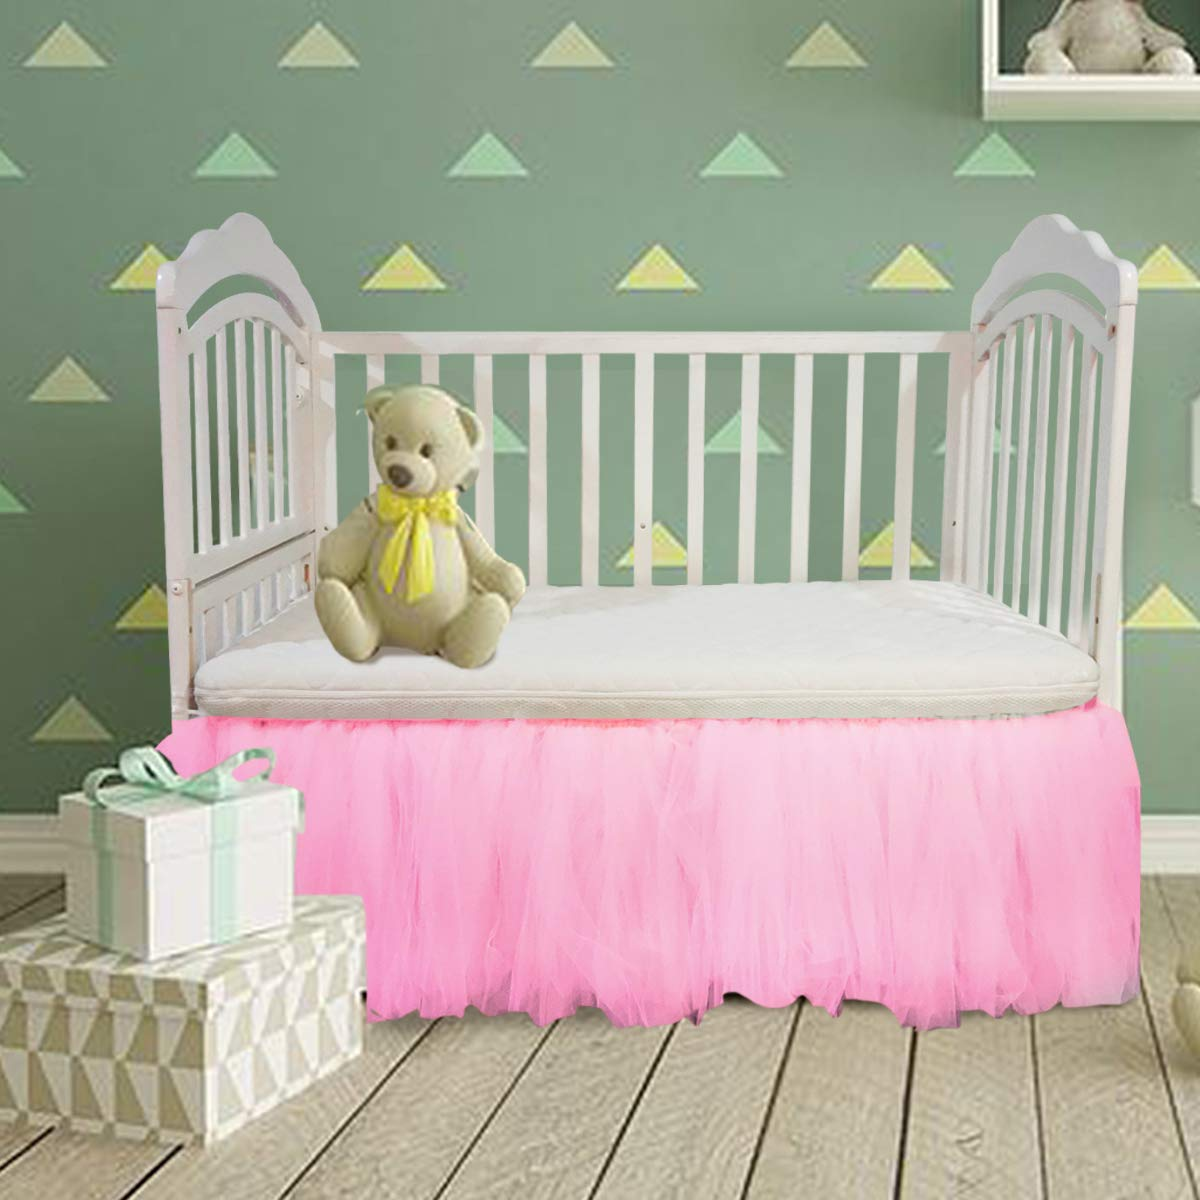 Pink Crib Skirt Baby Ruffle Baby Bed Skirt Portable Tulle Tutu Crib Skirt Handmade for Boys or Girls Birthday Party,Baby Shower &Baby Room Decoration,16''Drop,One Side